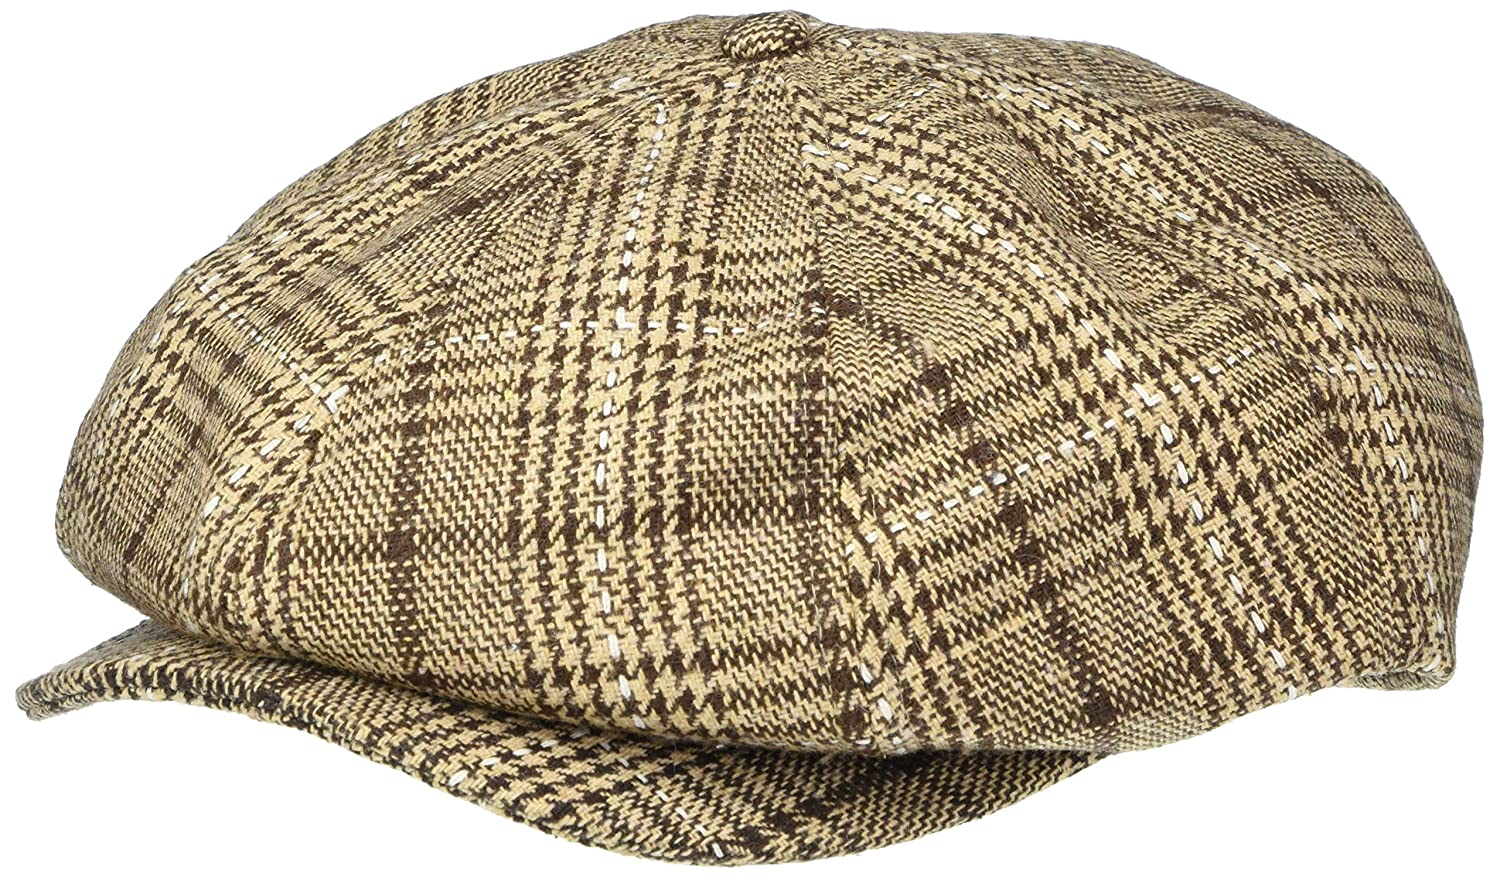 1940s Mens Hats | Fedora, Homburg, Pork Pie Hats BRIXTON Mens Brood Newsboy Snap Hat $37.11 AT vintagedancer.com